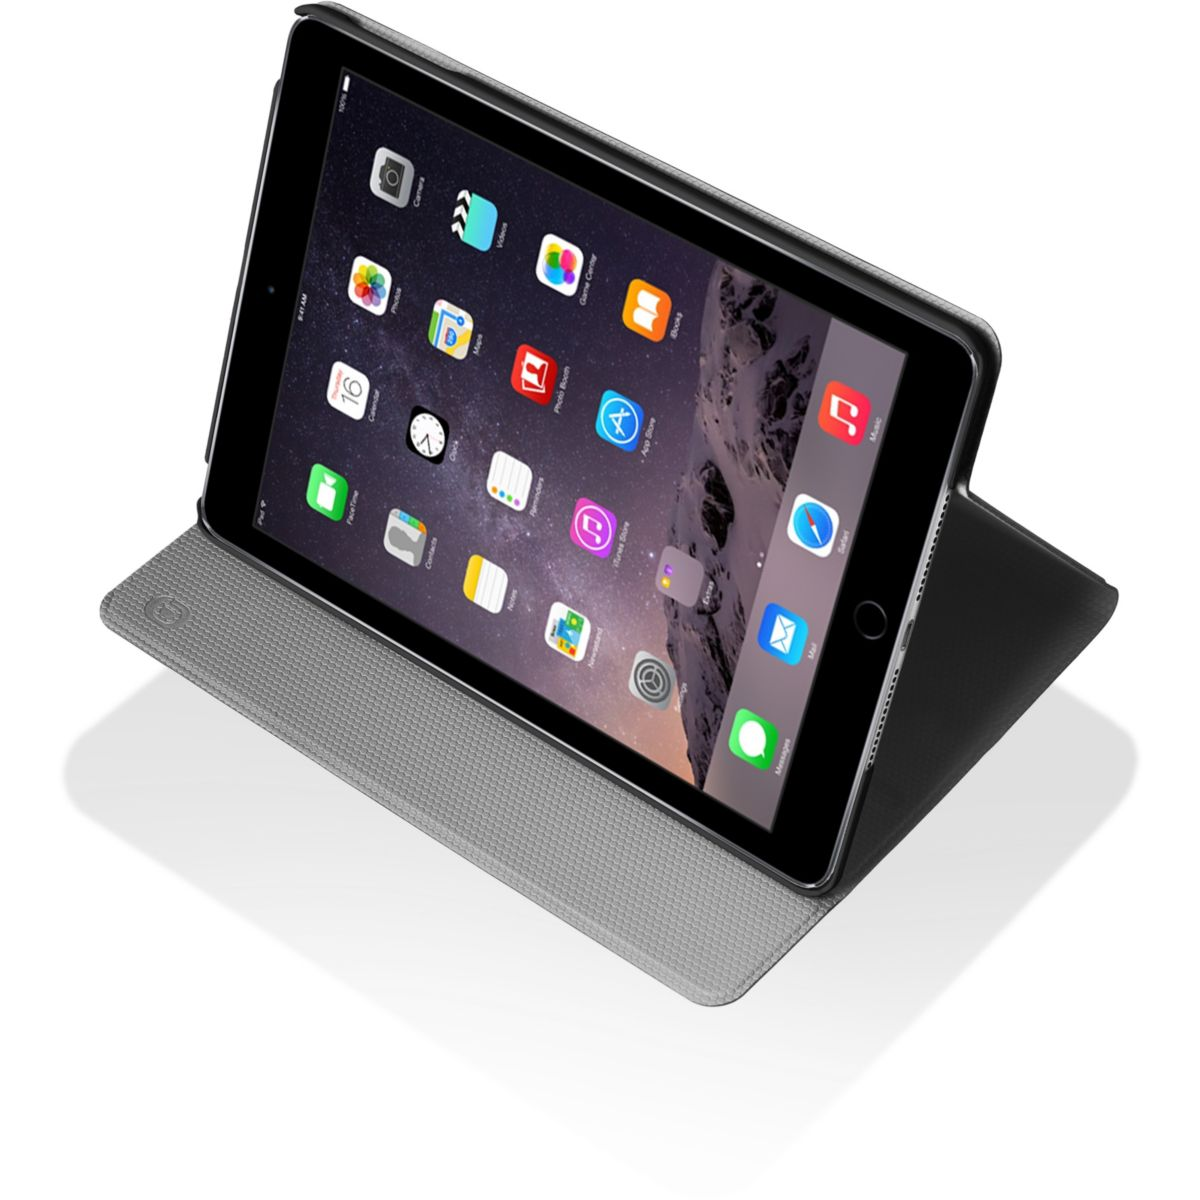 Etui ESSENTIELB iPad Air 2 Stand noir (photo)